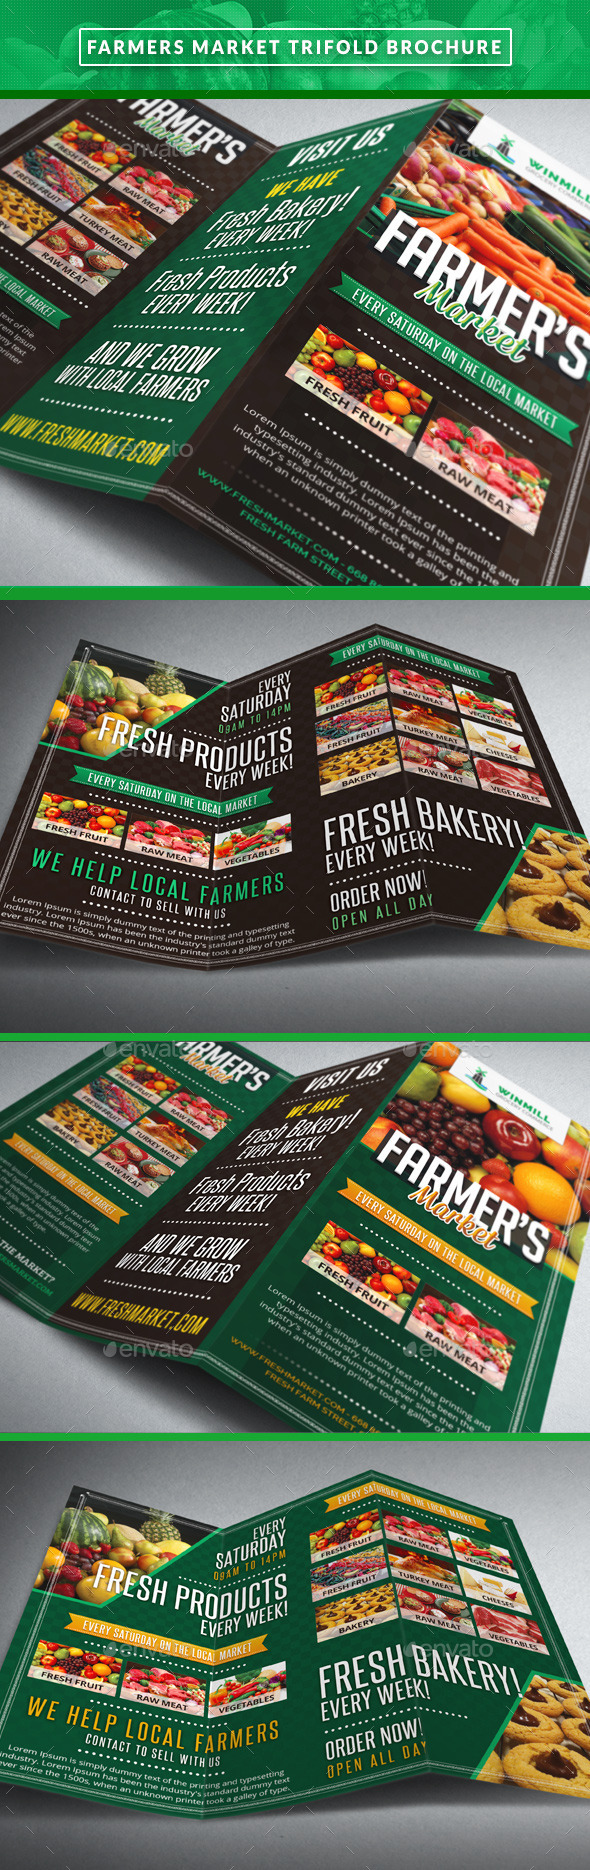 Farmer's Market Commerce Trifold - Brochures Print Templates